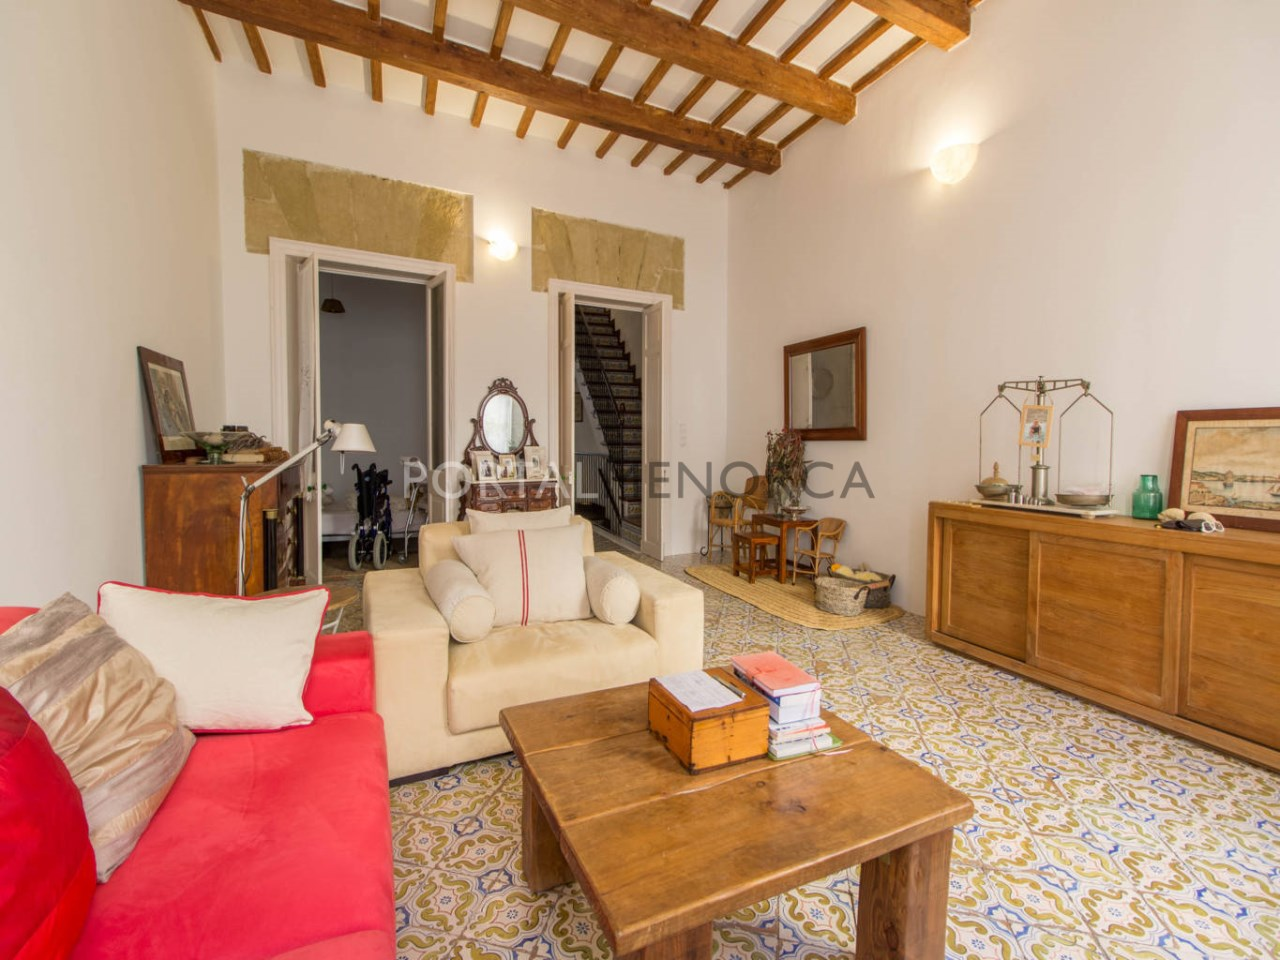 House with patio for sale in Menorca